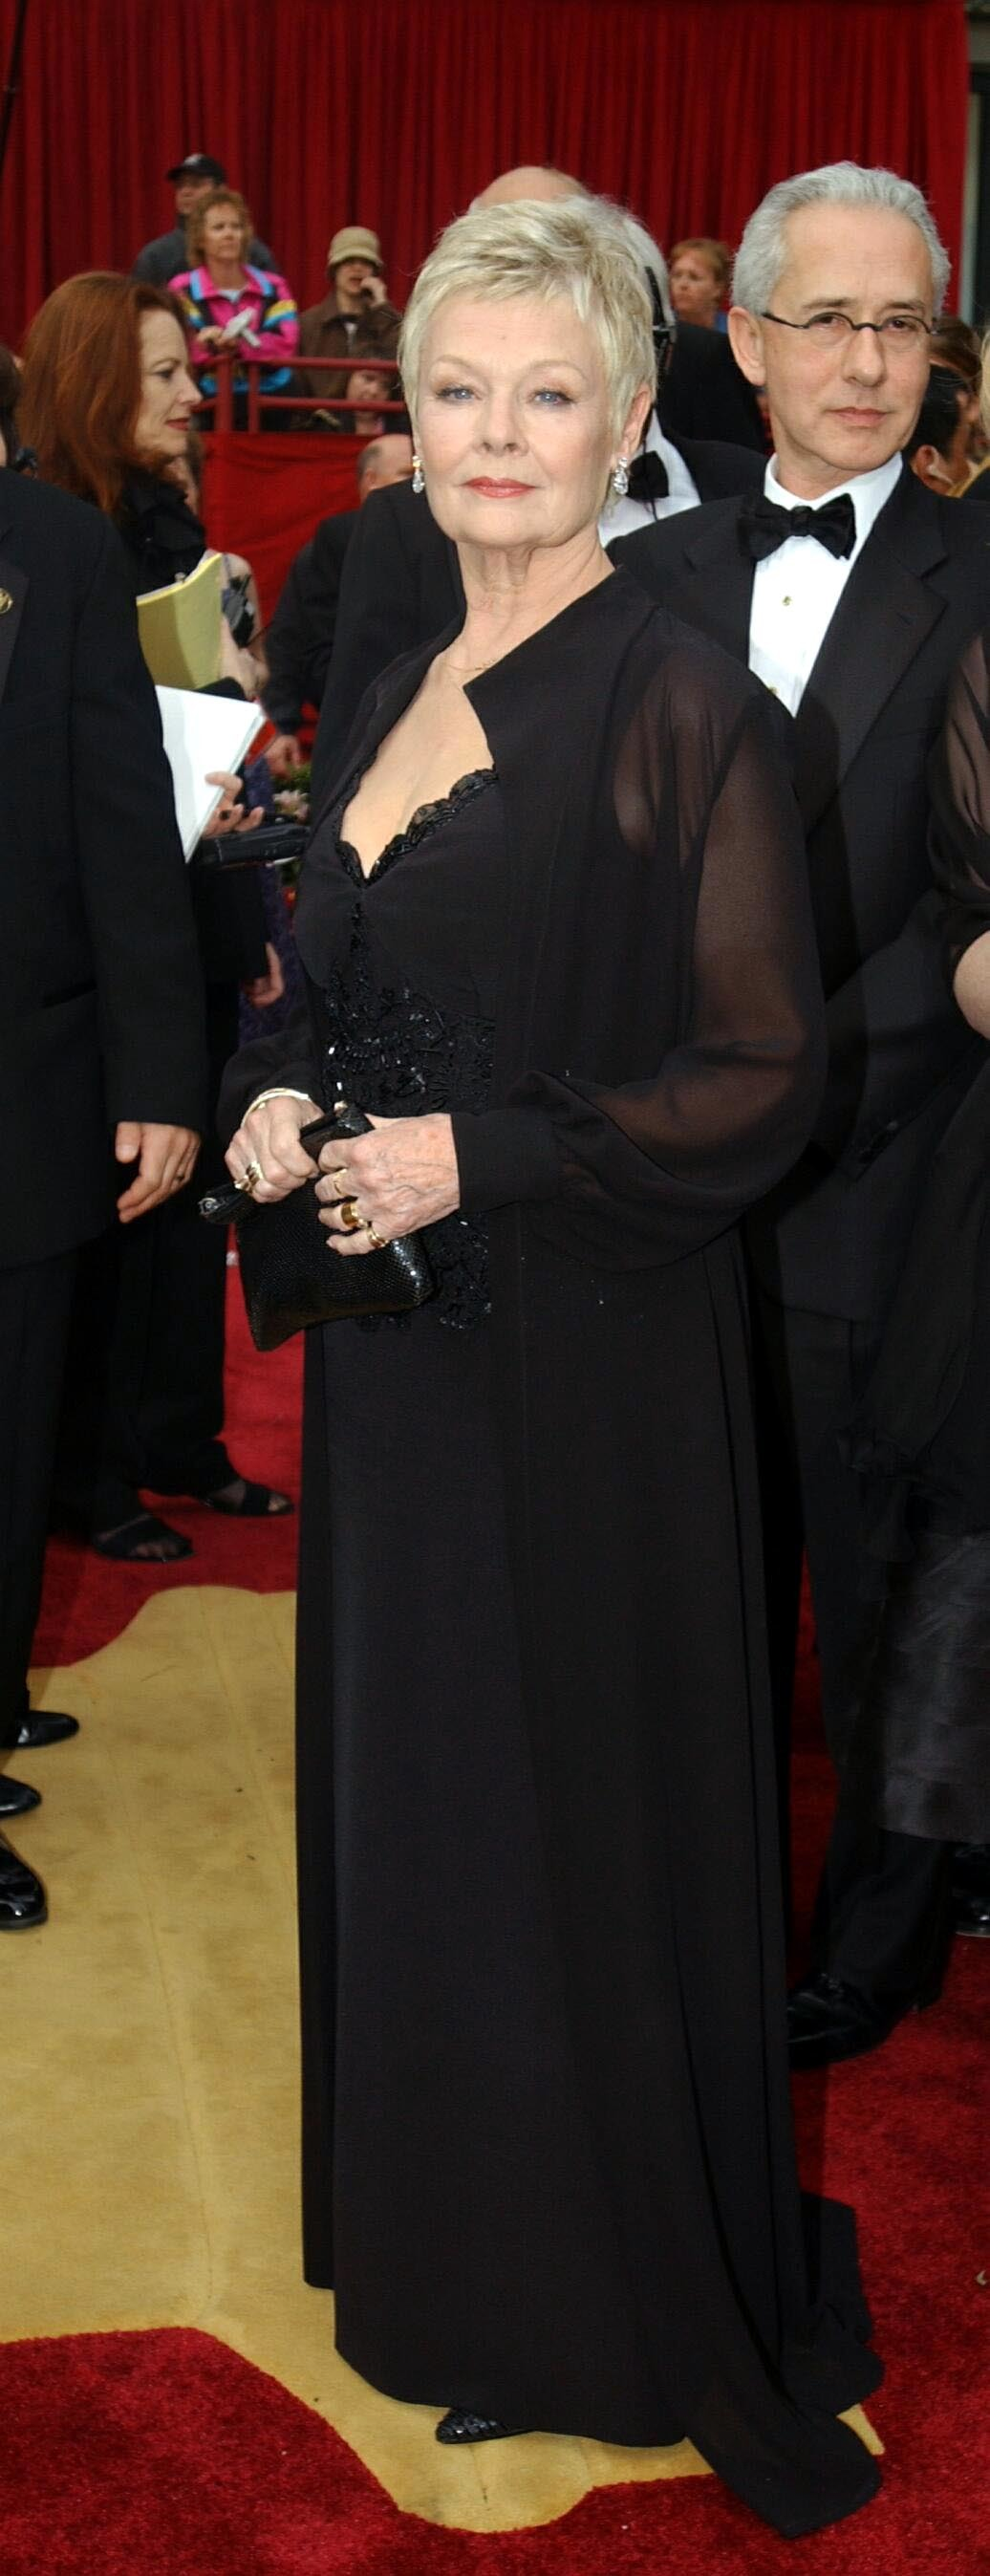 Judi Dench at the 2002 Academy Awards